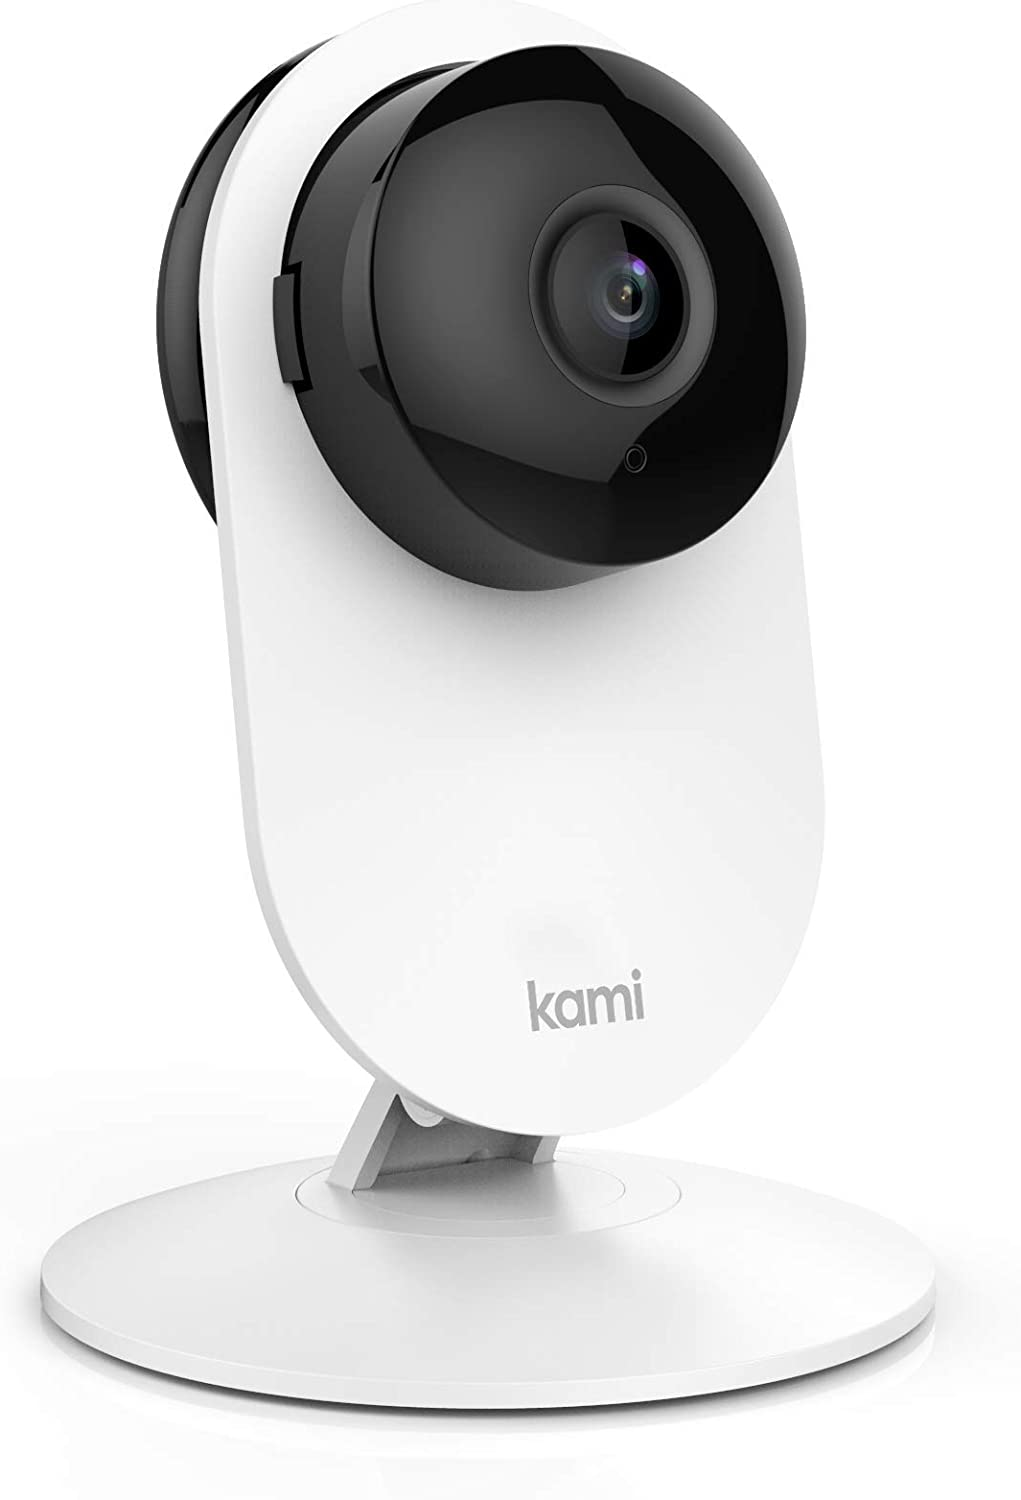 Security Home Camera, Kami by YI 1080p WiFi Smart Wireless Indoor Nanny IP Cam with Night Vision, 2-Way Audio, Motion & Face Detection, Phone App, Pet Cat Dog Cam - Works with Alexa and Google